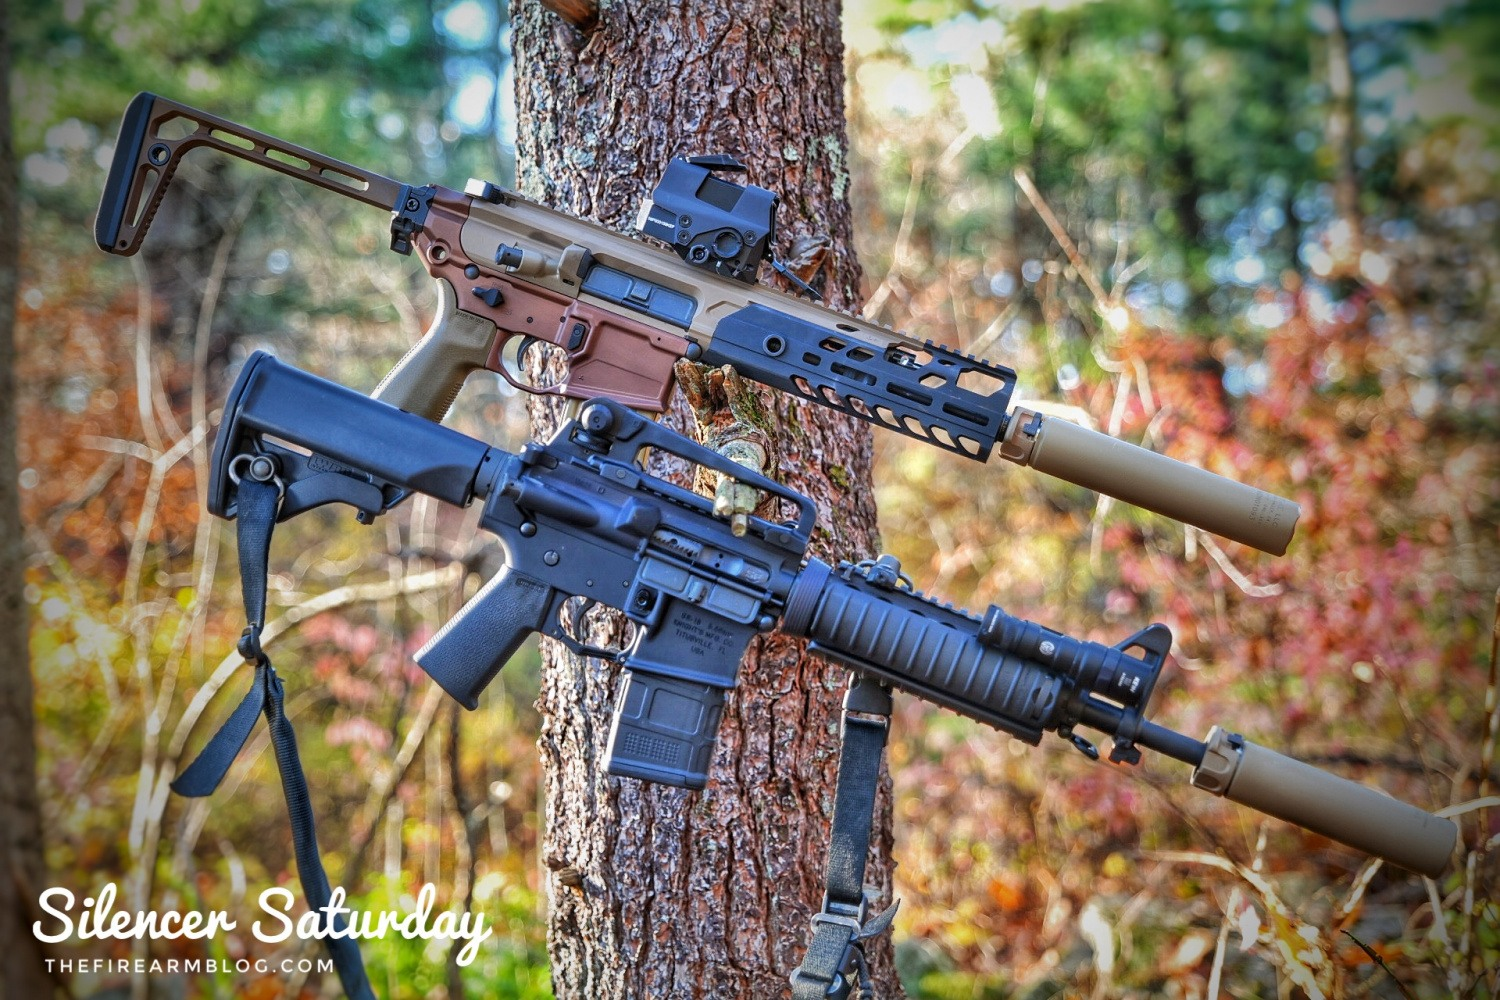 SILENCER SATURDAY #138: Picking The Best 5.56mm AR15 Suppressor For You